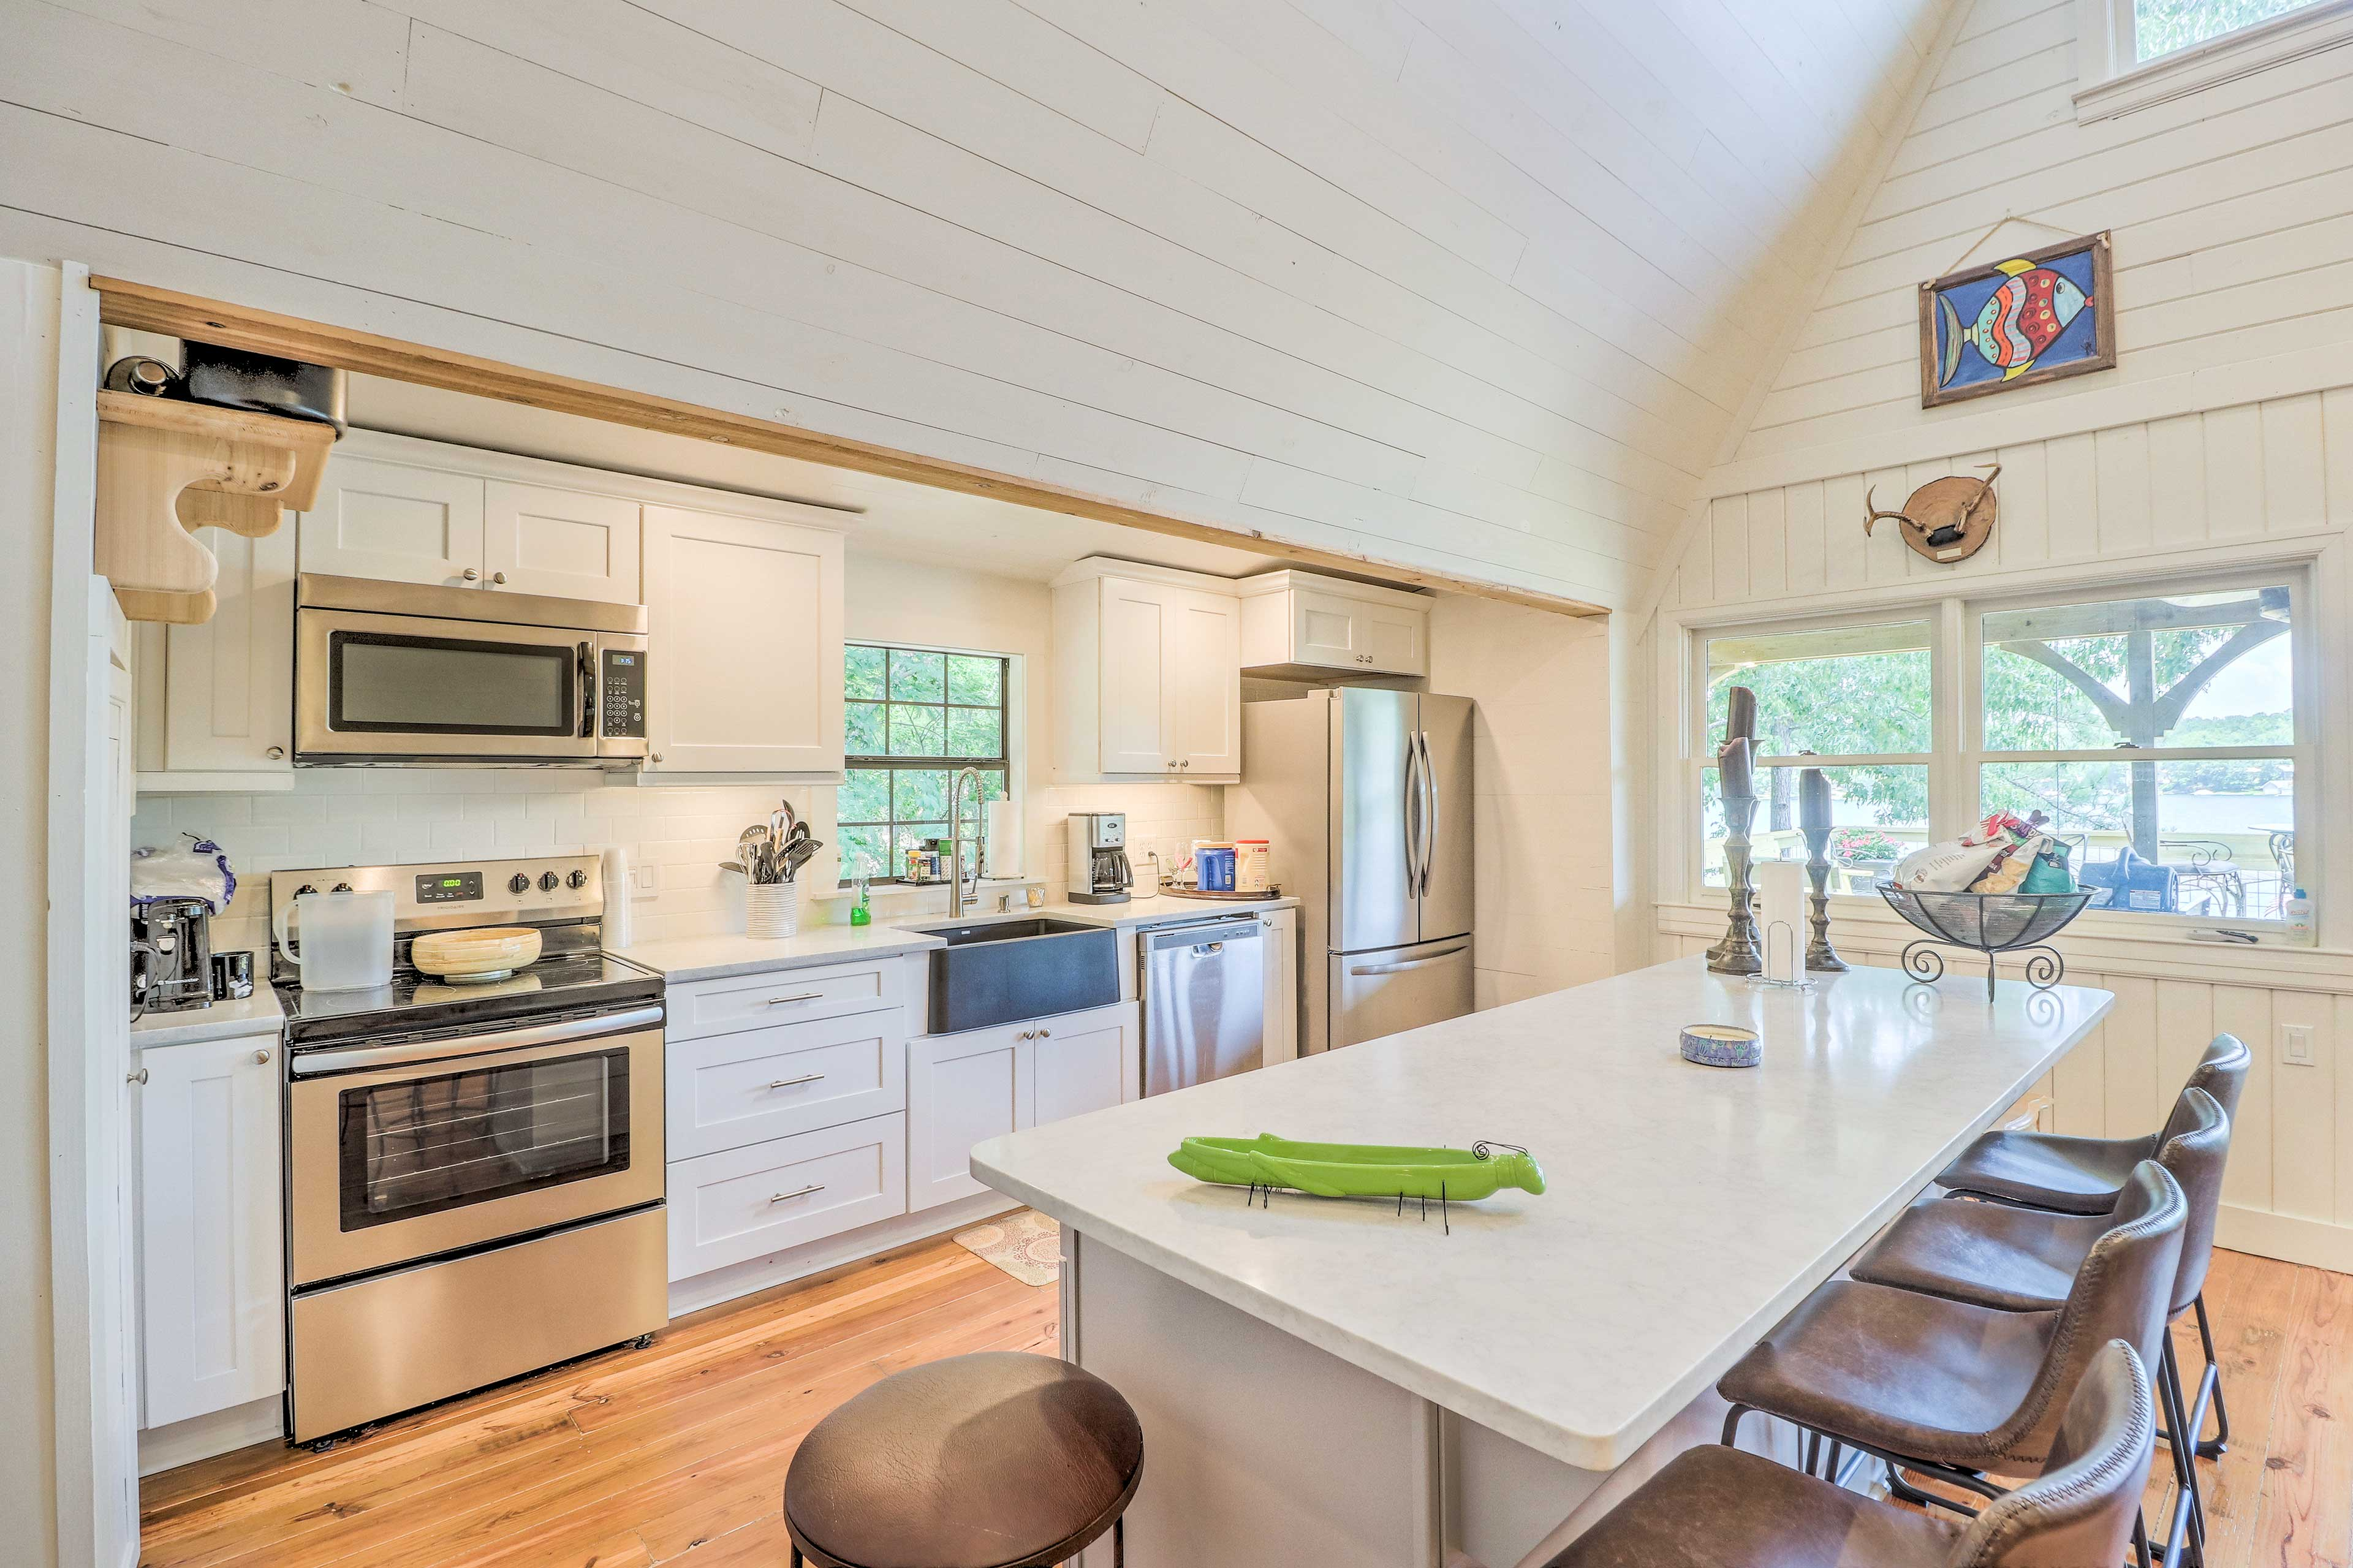 Serve snacks and drinks at the island countertop.